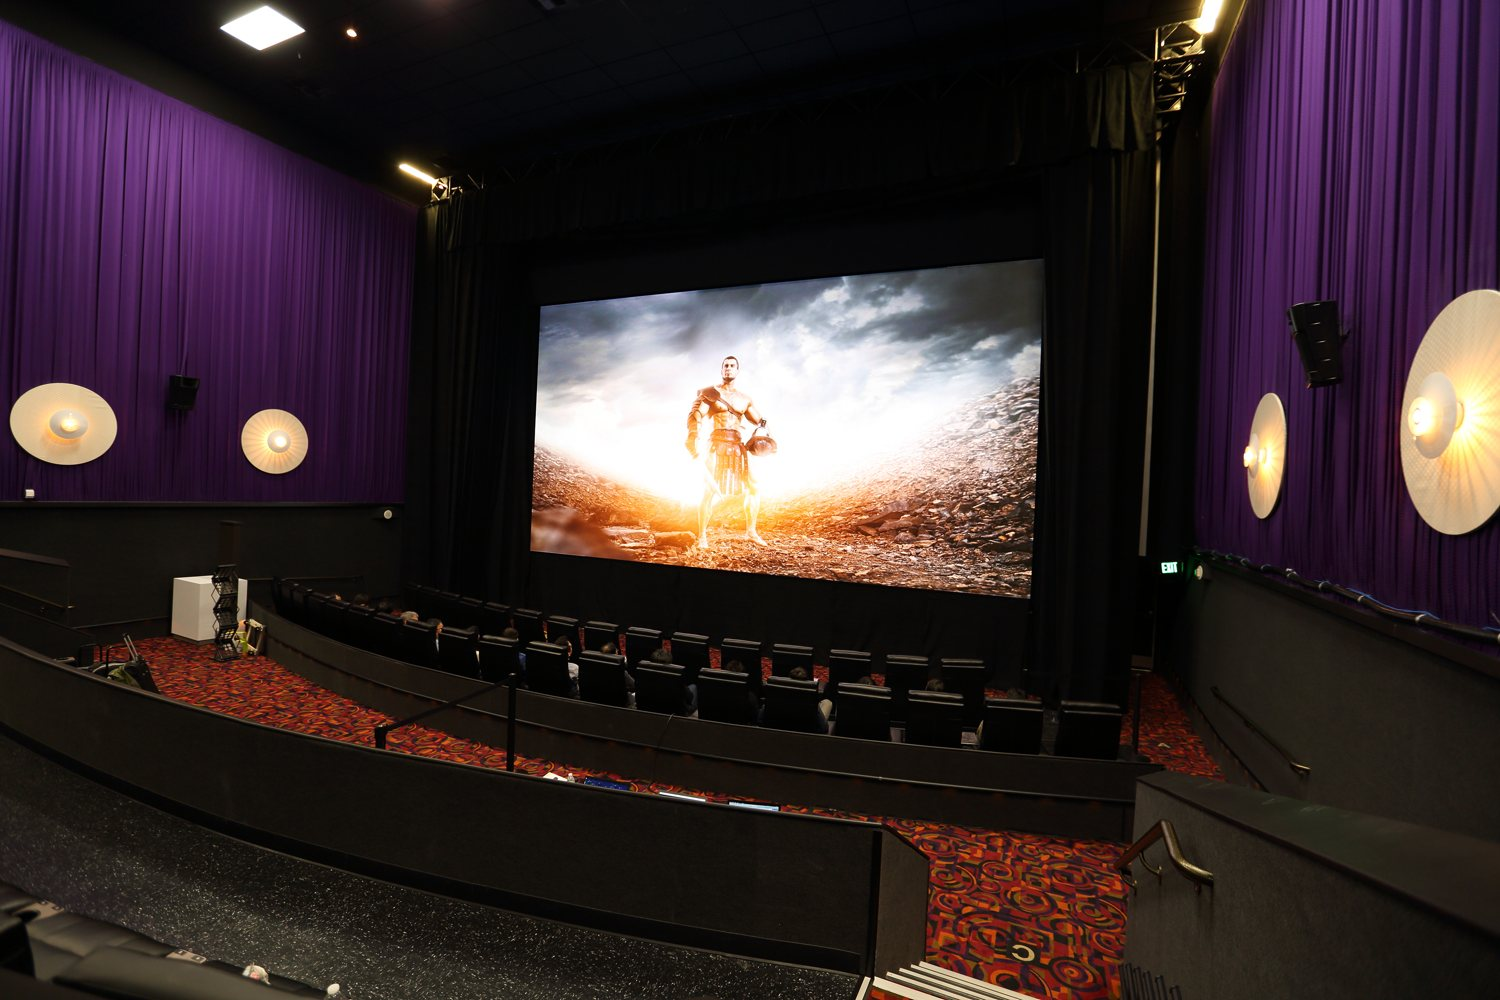 screen cinema samsung theater movie led 4k theaters foot future display hdr giant edition container inside digital think box nofilmschool